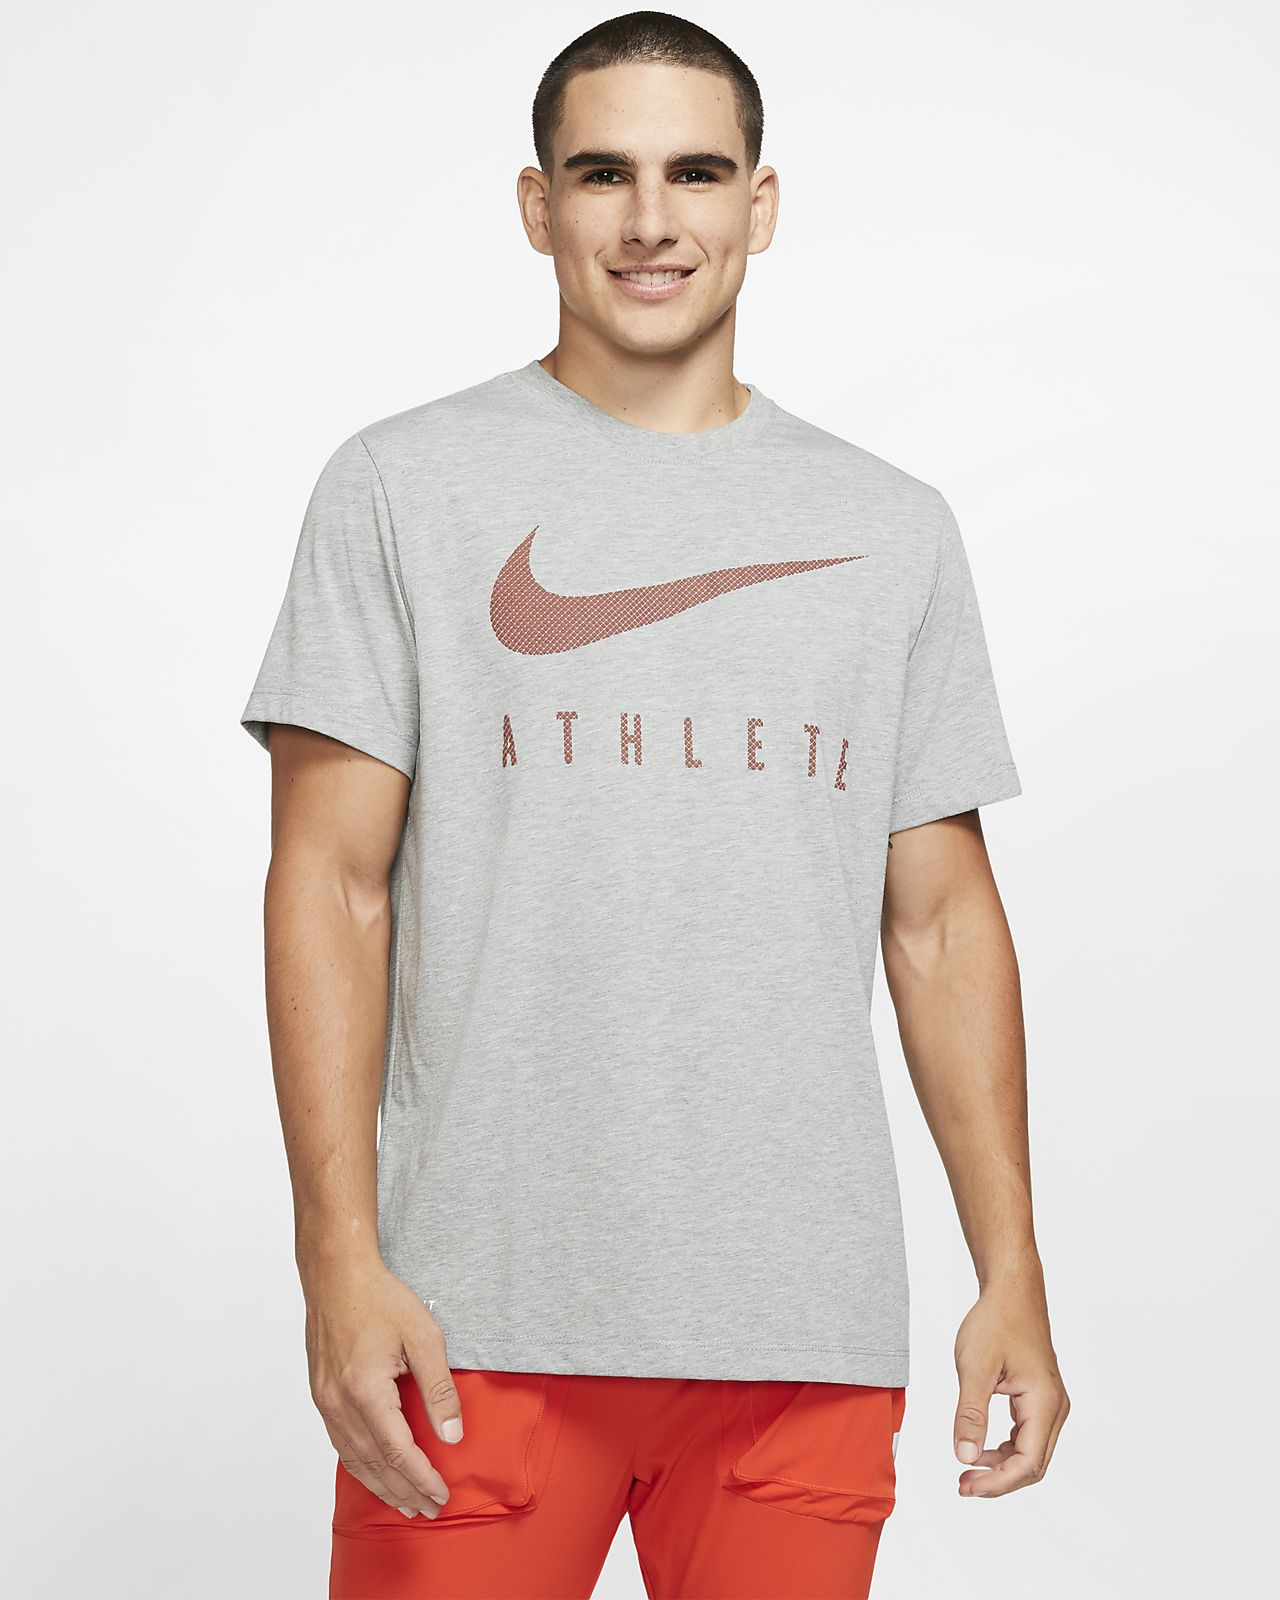 Nike Dri FIT mit Shirt Swoosh Herren T für Trainings MpUqSzV